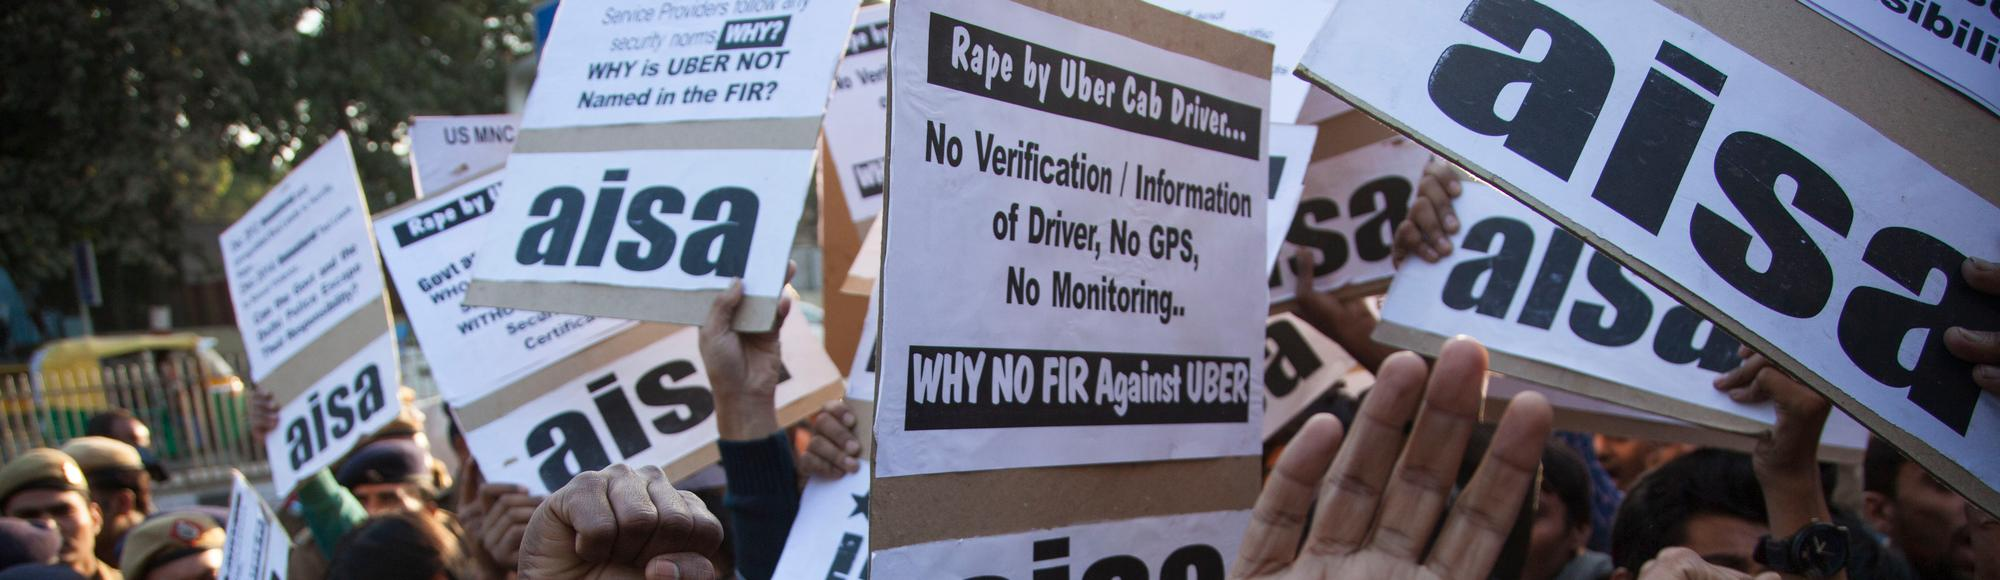 Uber Driver Arrested in India for Allegedly Raping and Threatening to Stab Passenger